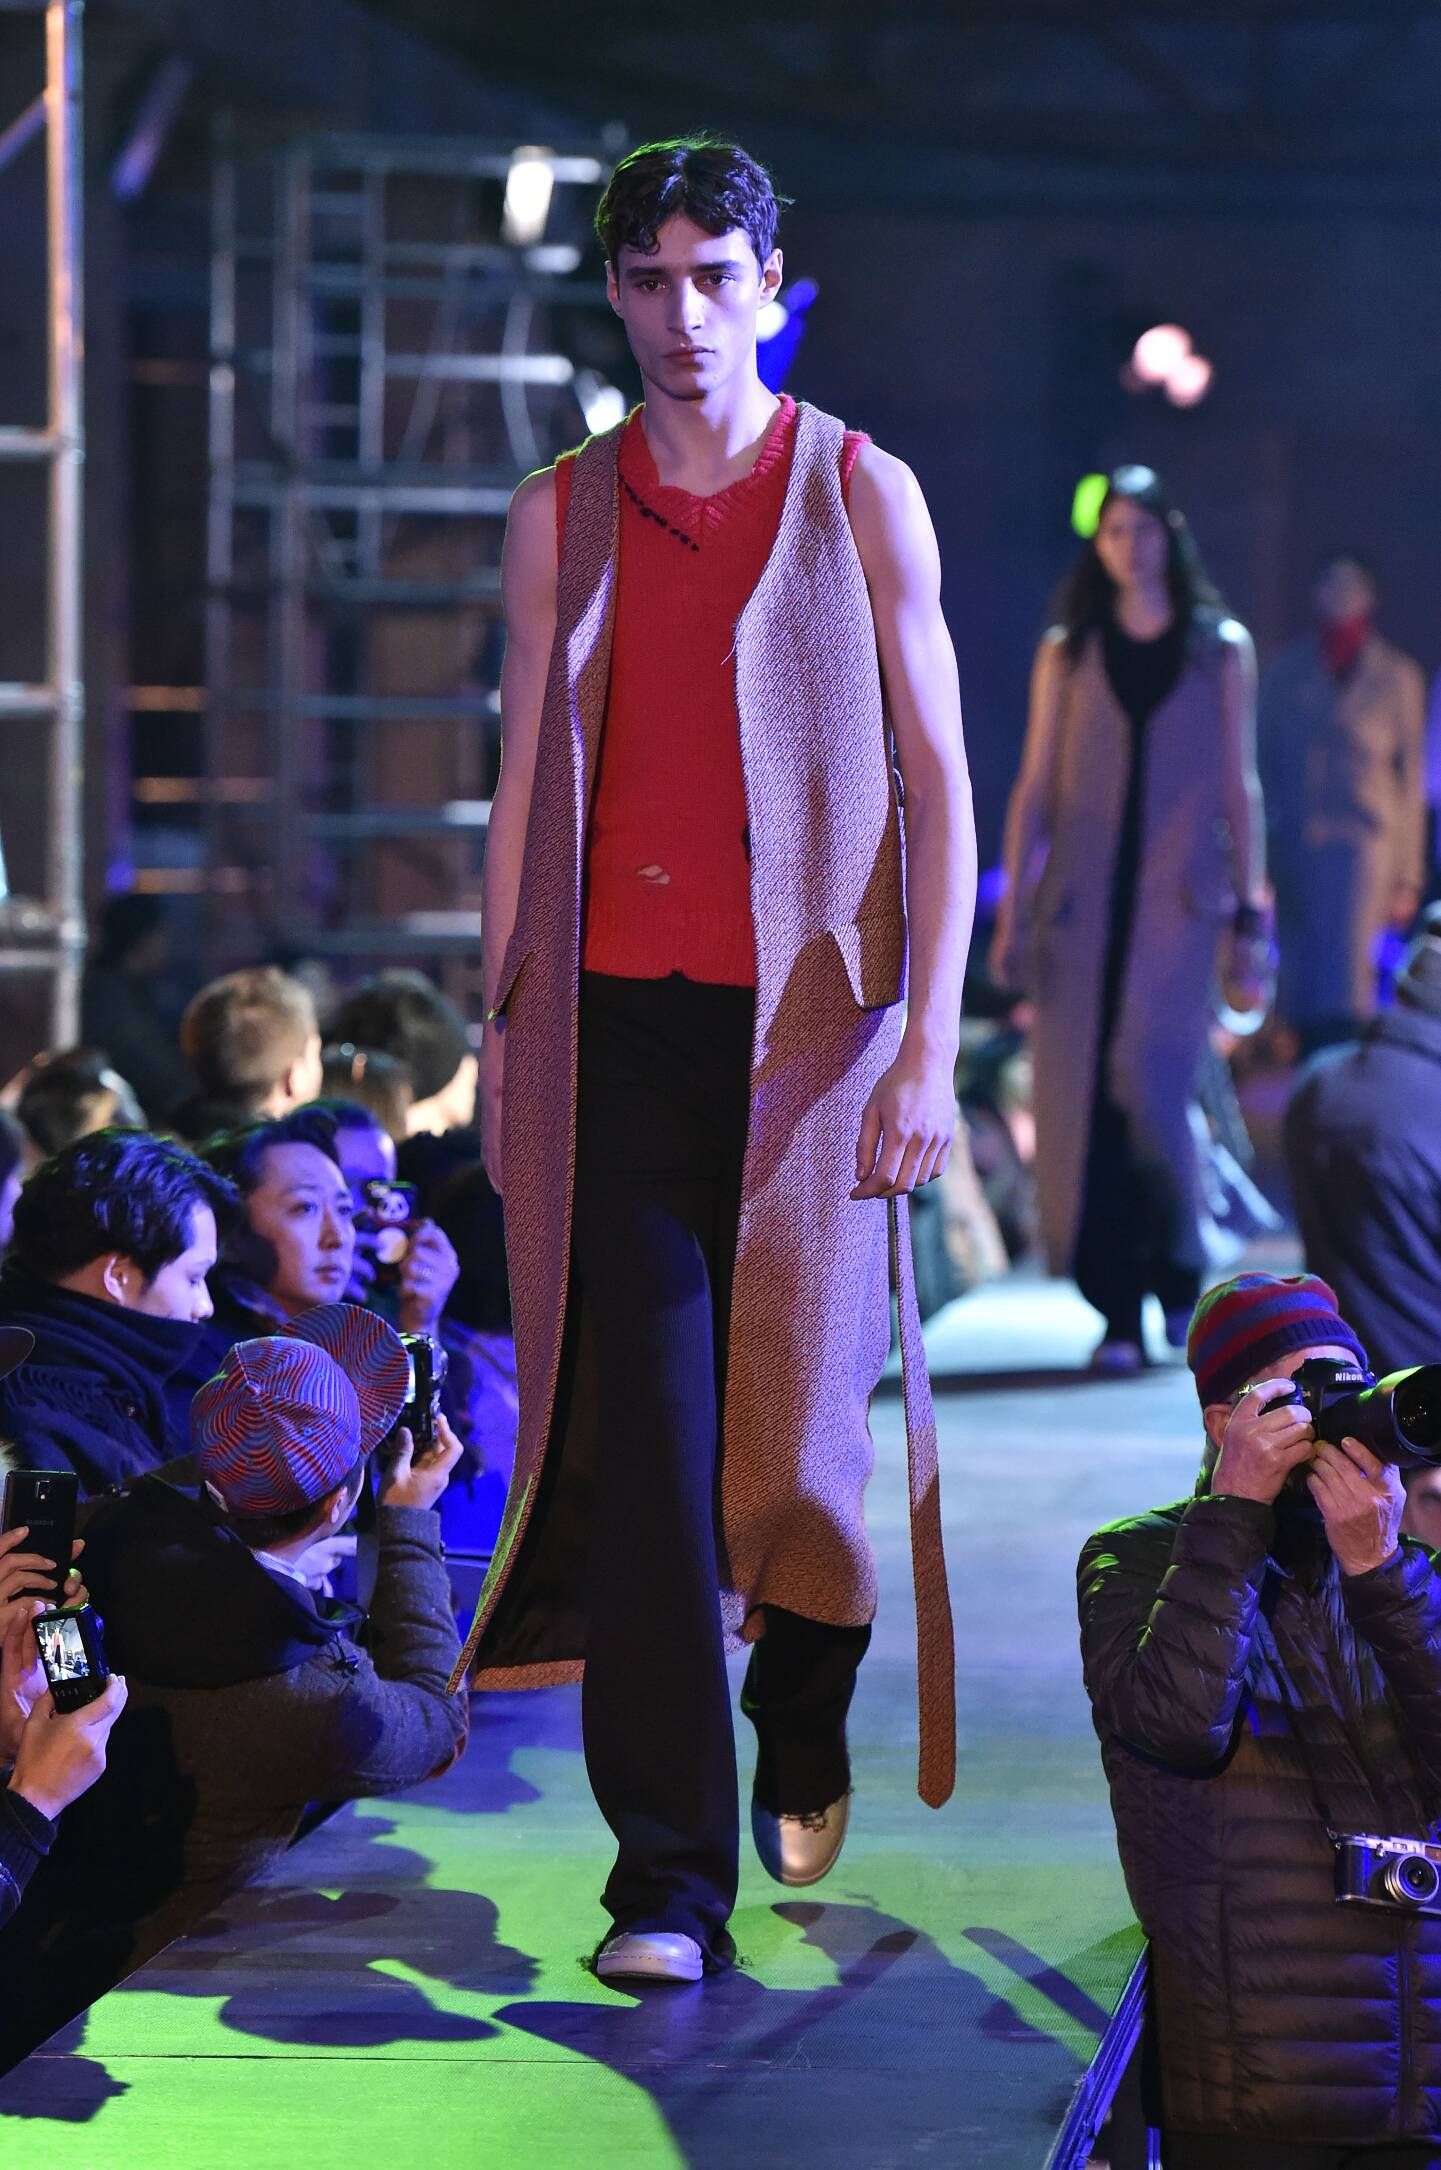 Runway Raf Simons Fall Winter 2015 16 Men's Collection Paris Fashion Week